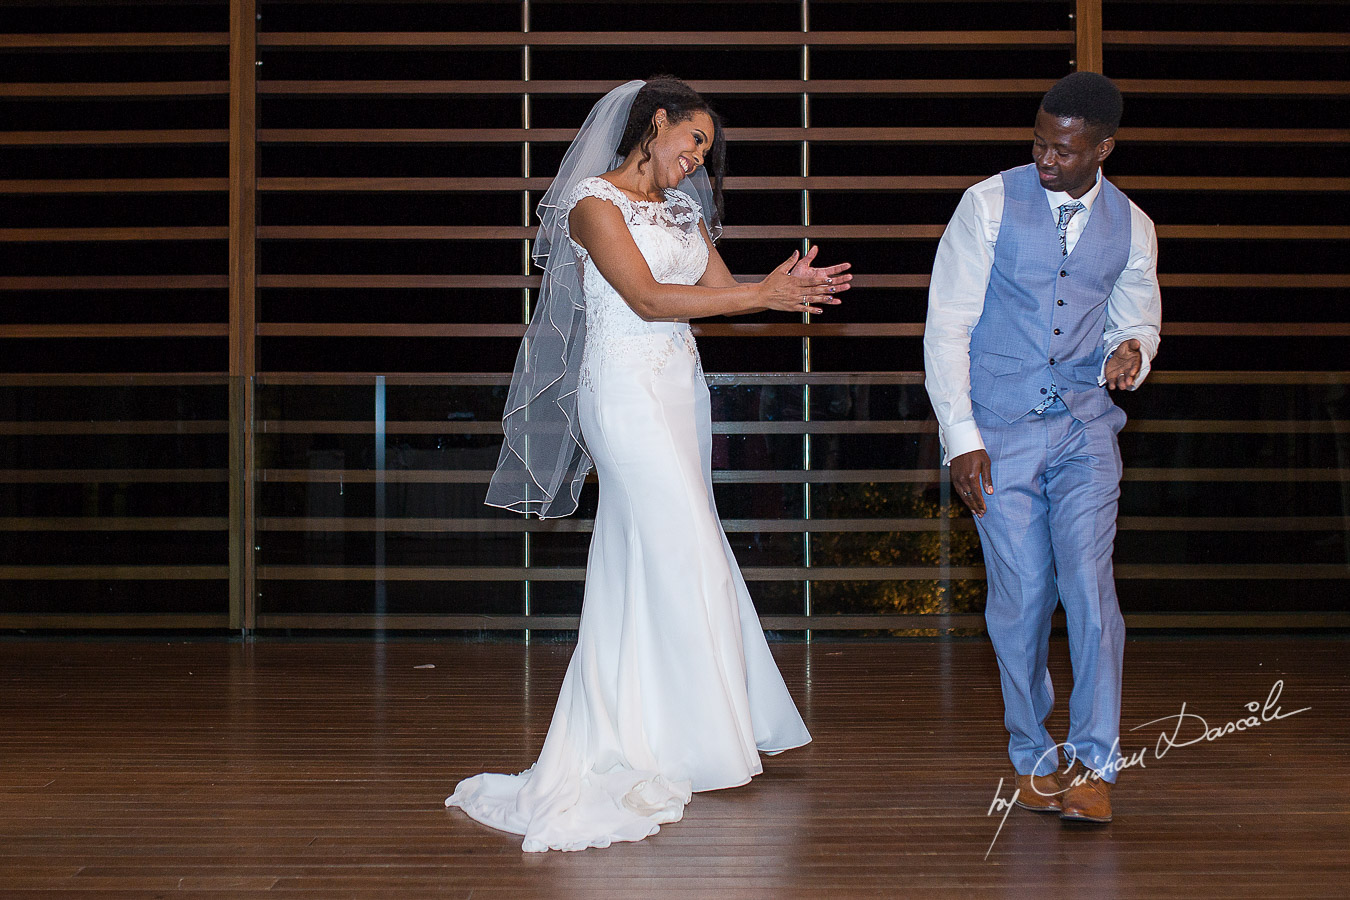 Bride and groom first dance moments captured at a wedding at Minthis Hills in Cyprus, by Cristian Dascalu.